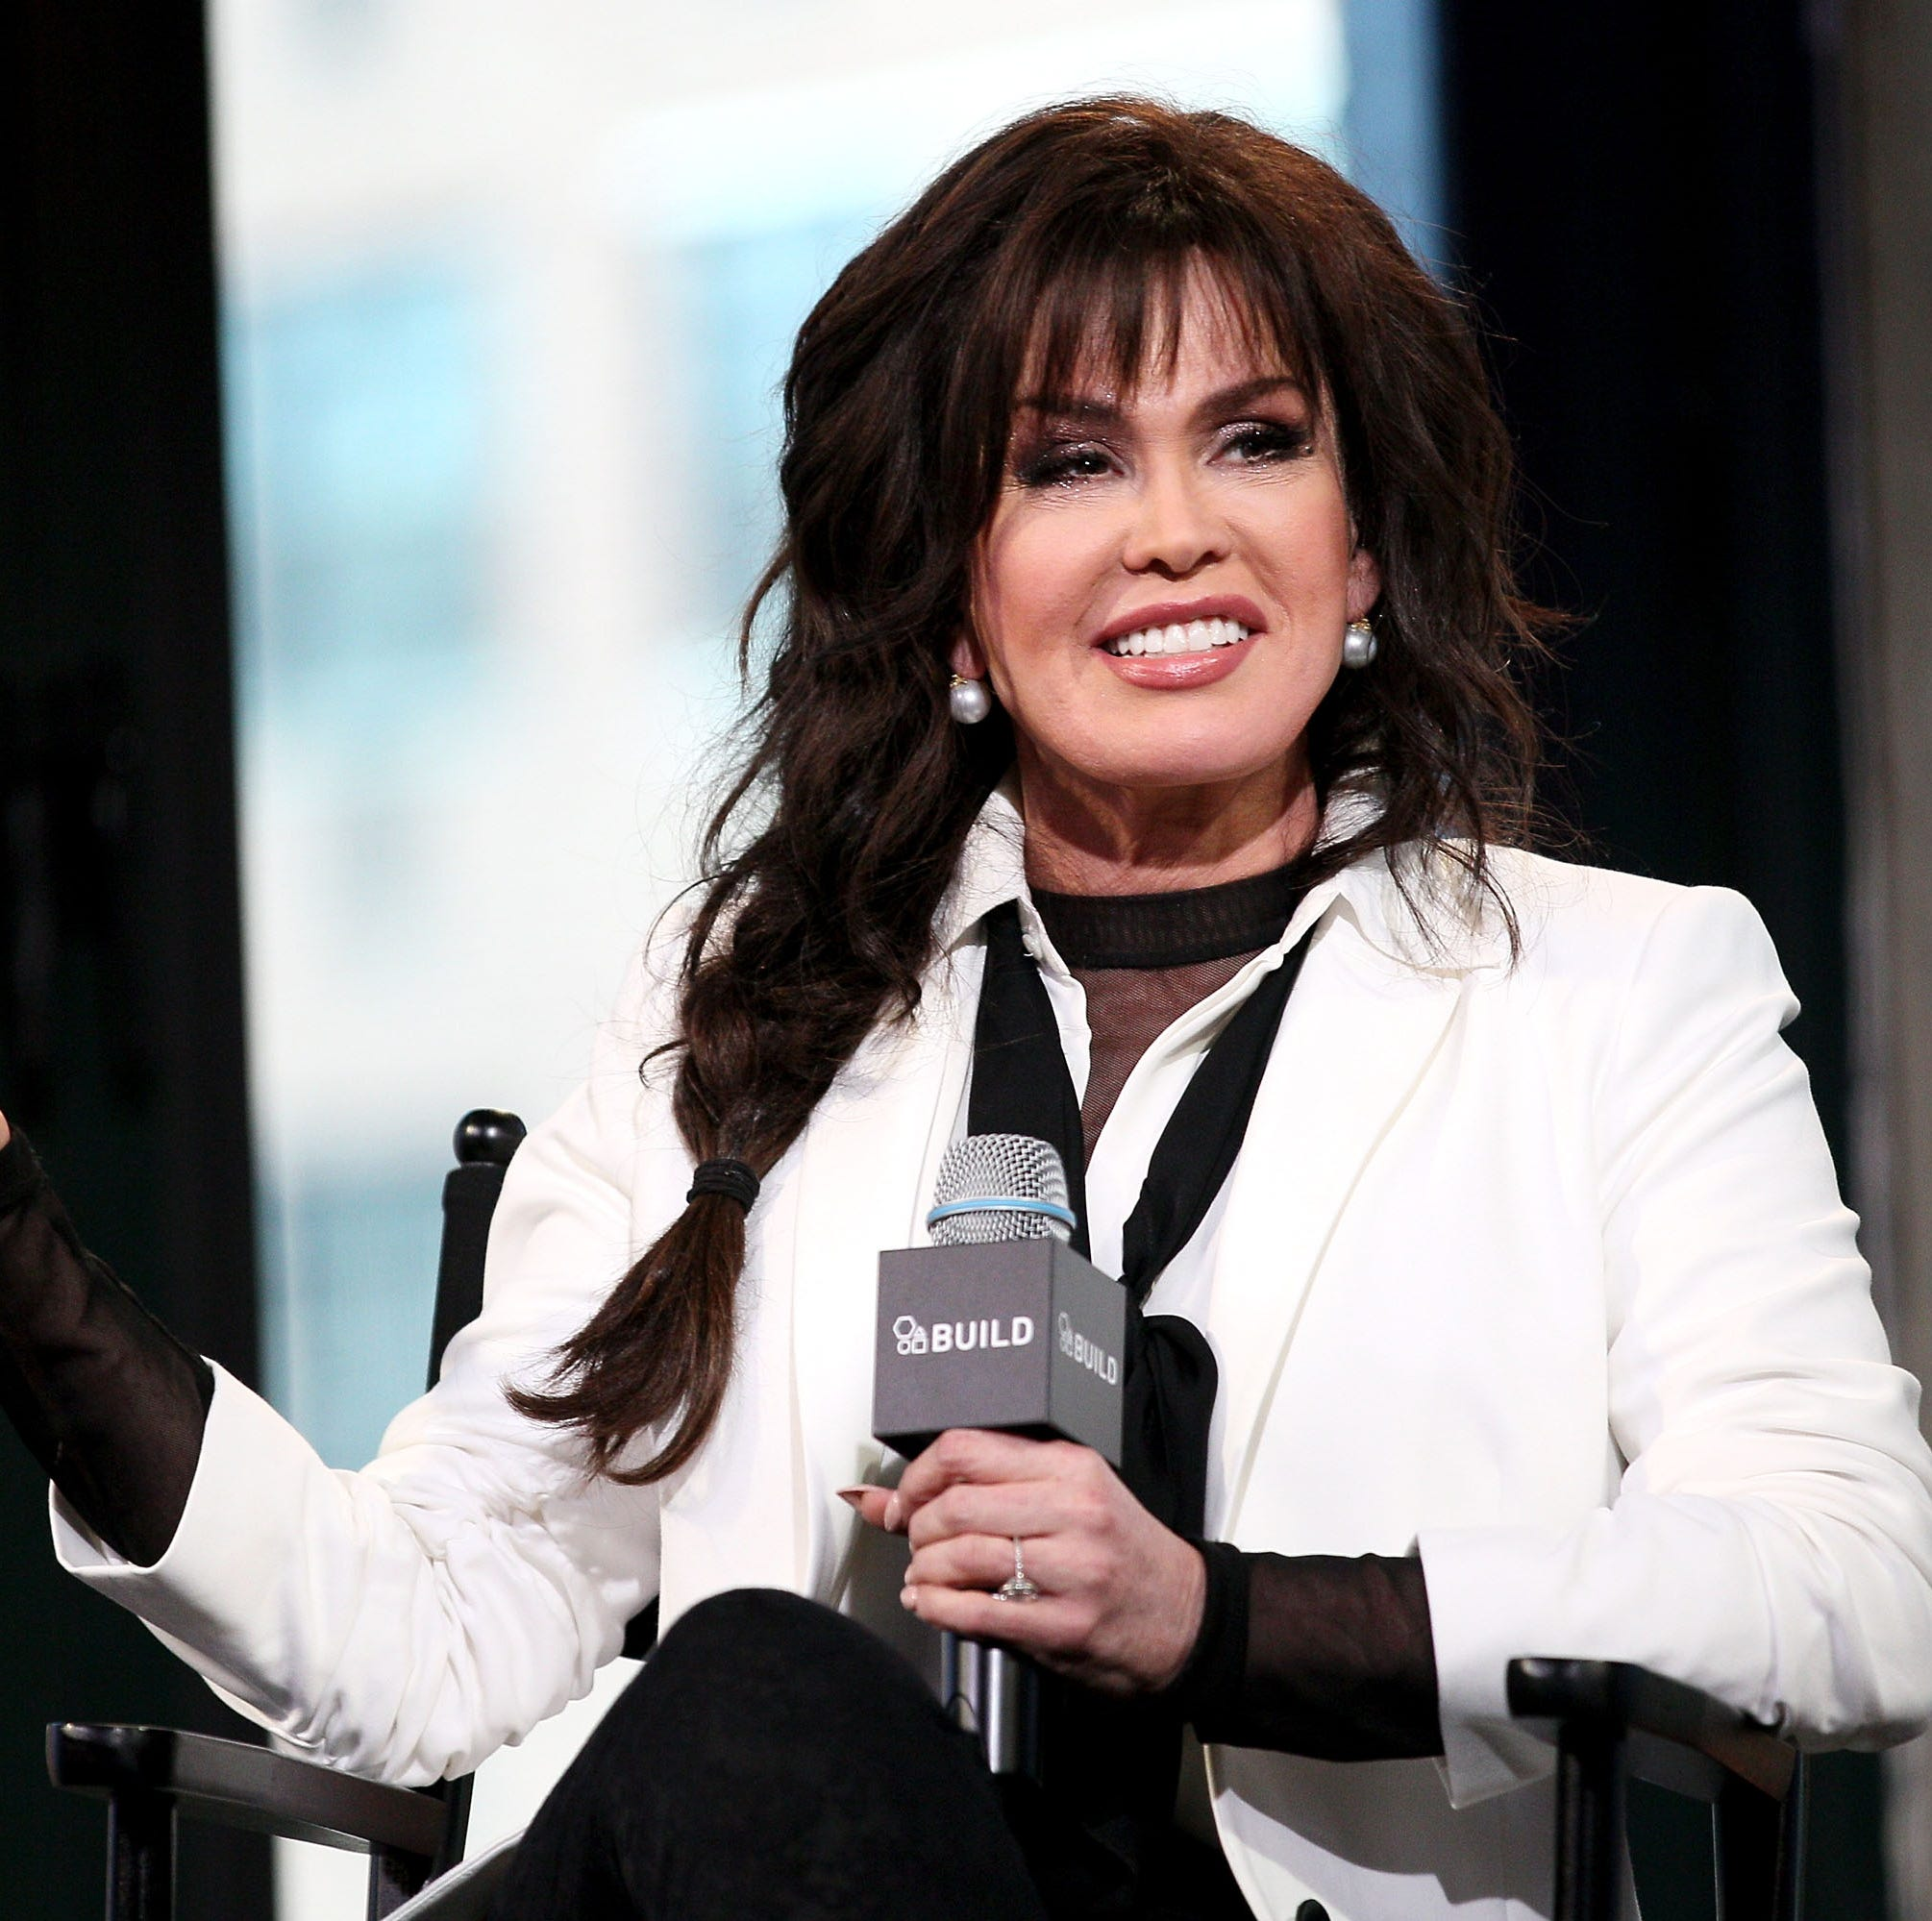 Marie Osmond's daughter welcomed a baby girl on Thursday.